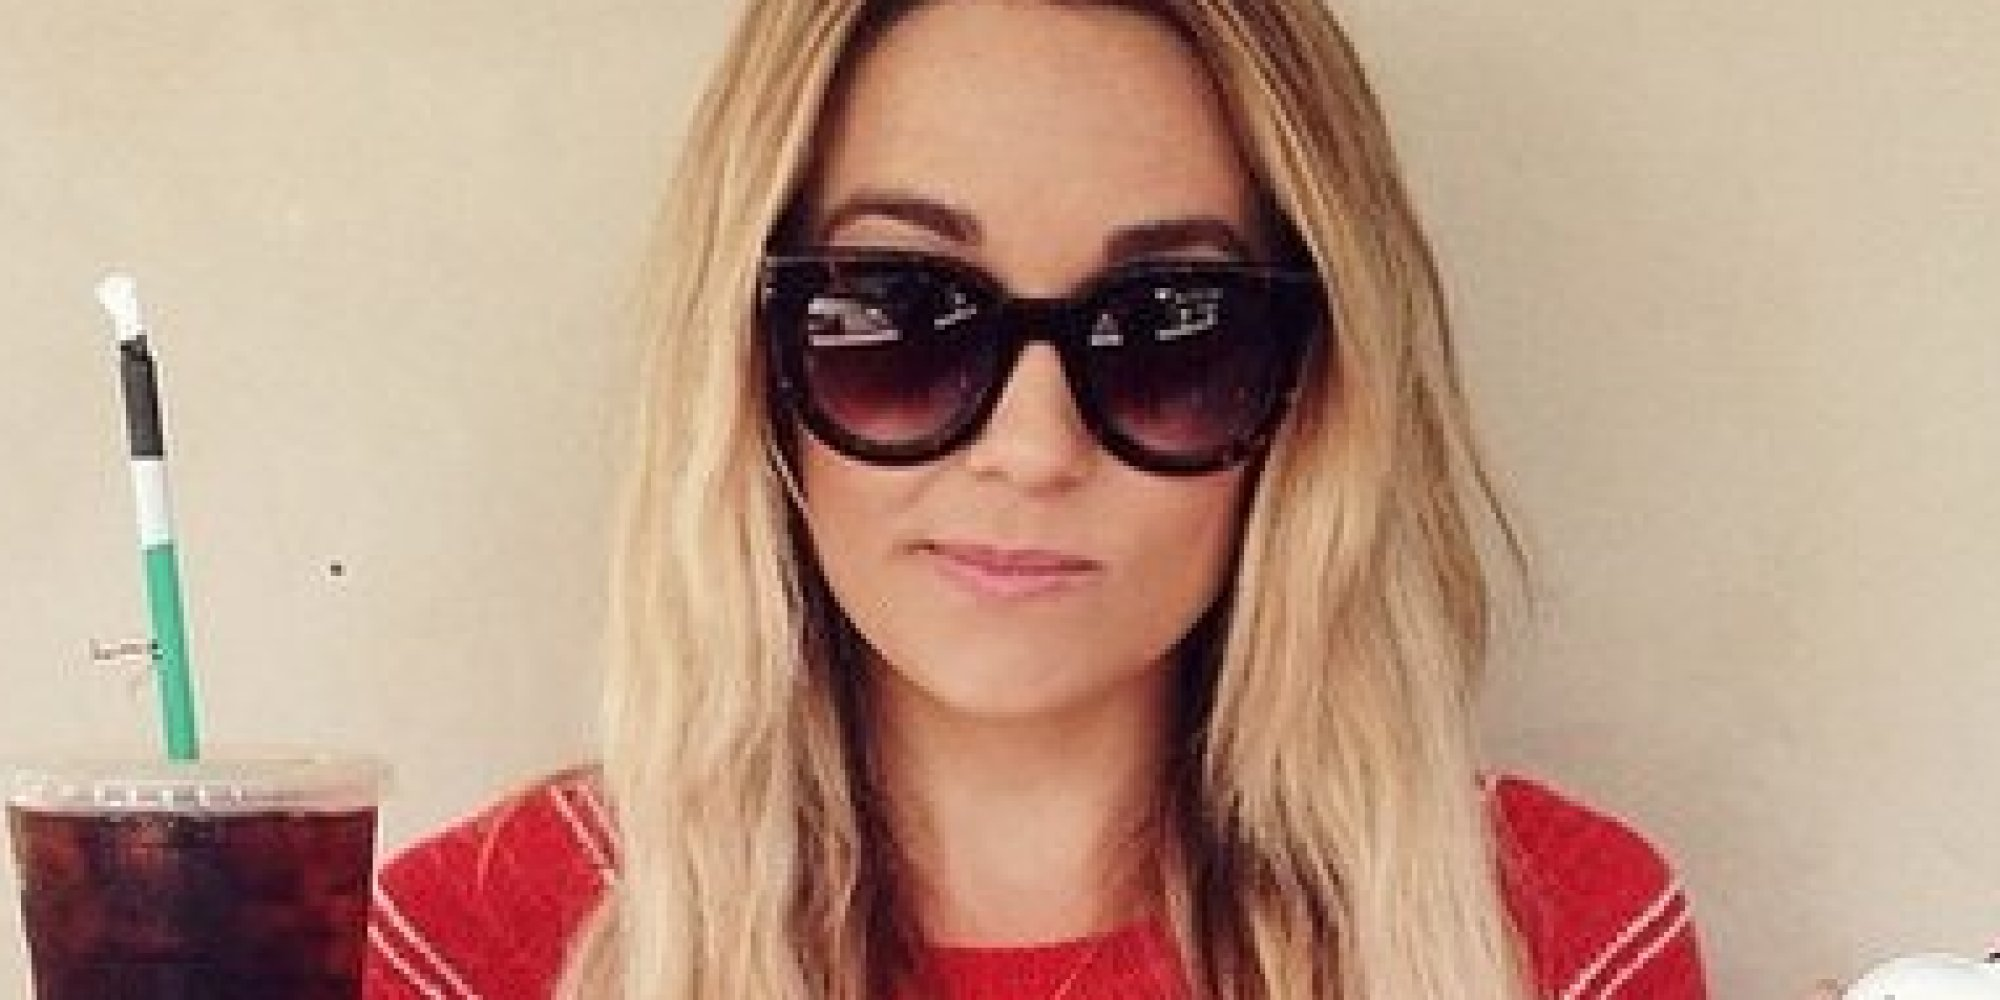 63m Followers 252 Following 1514 Posts See Instagram photos and videos from Lauren Conrad laurenconrad